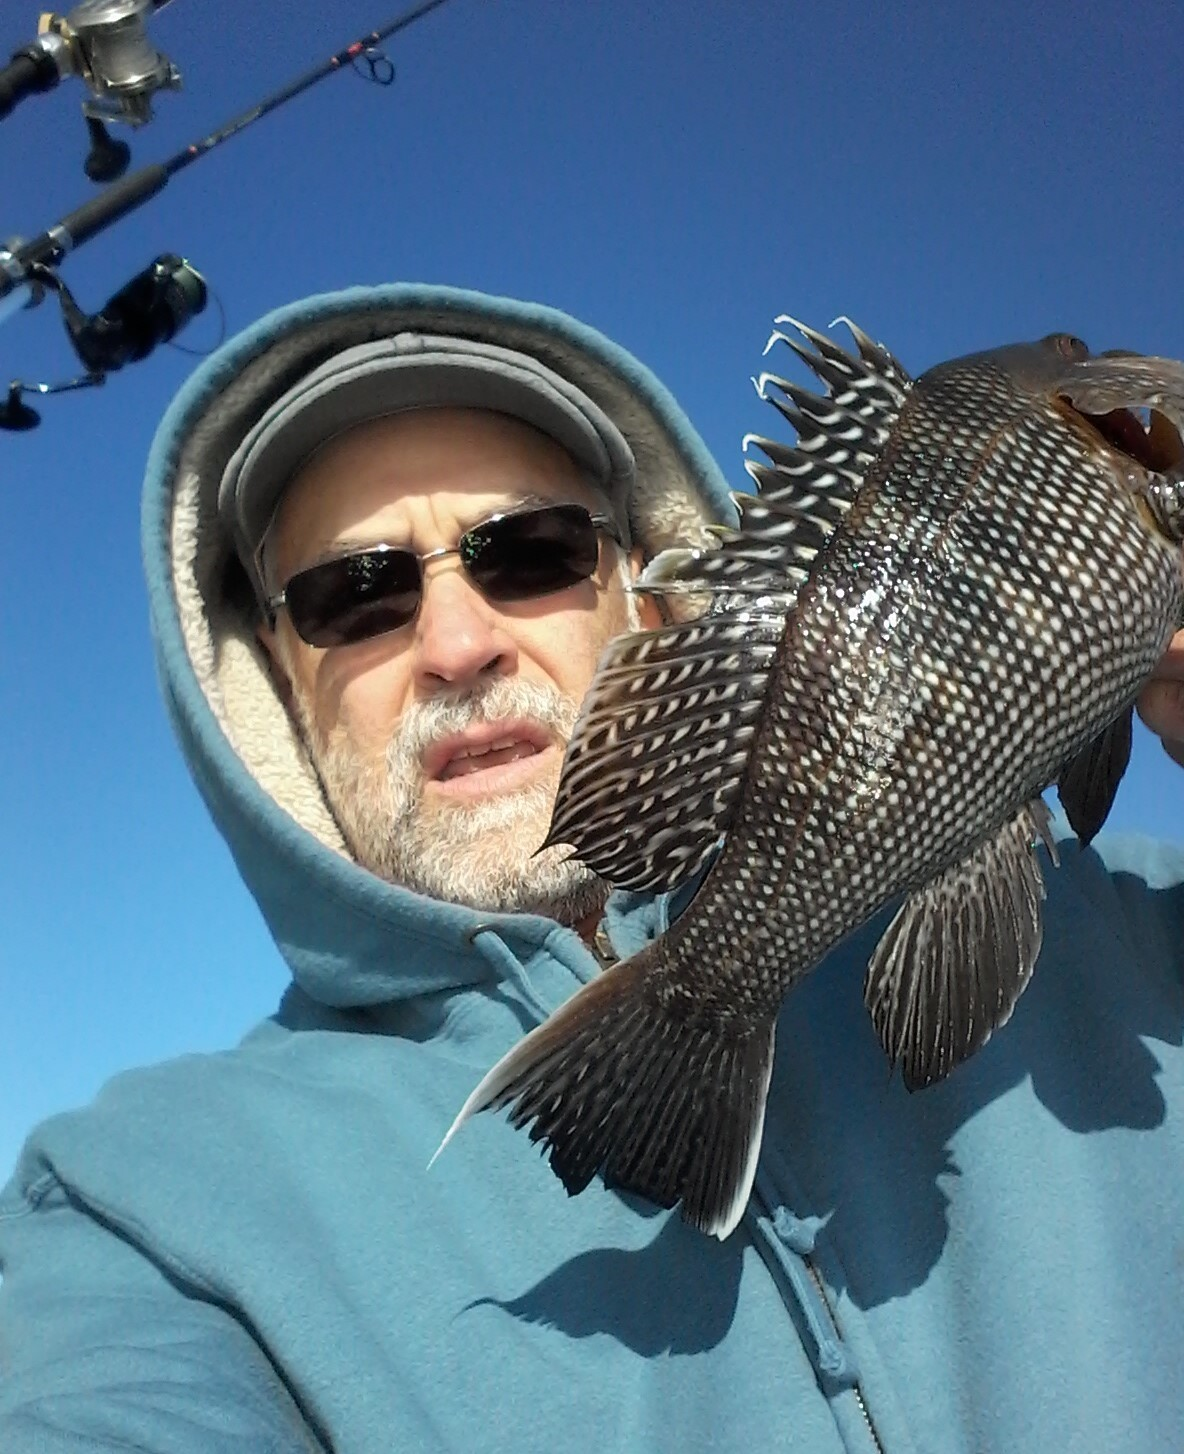 Narragansett Bay anglers fear new black sea bass regulations will prevent them from harvesting in late May and June. They say once waters warm in July and August, the fish leave the bay.